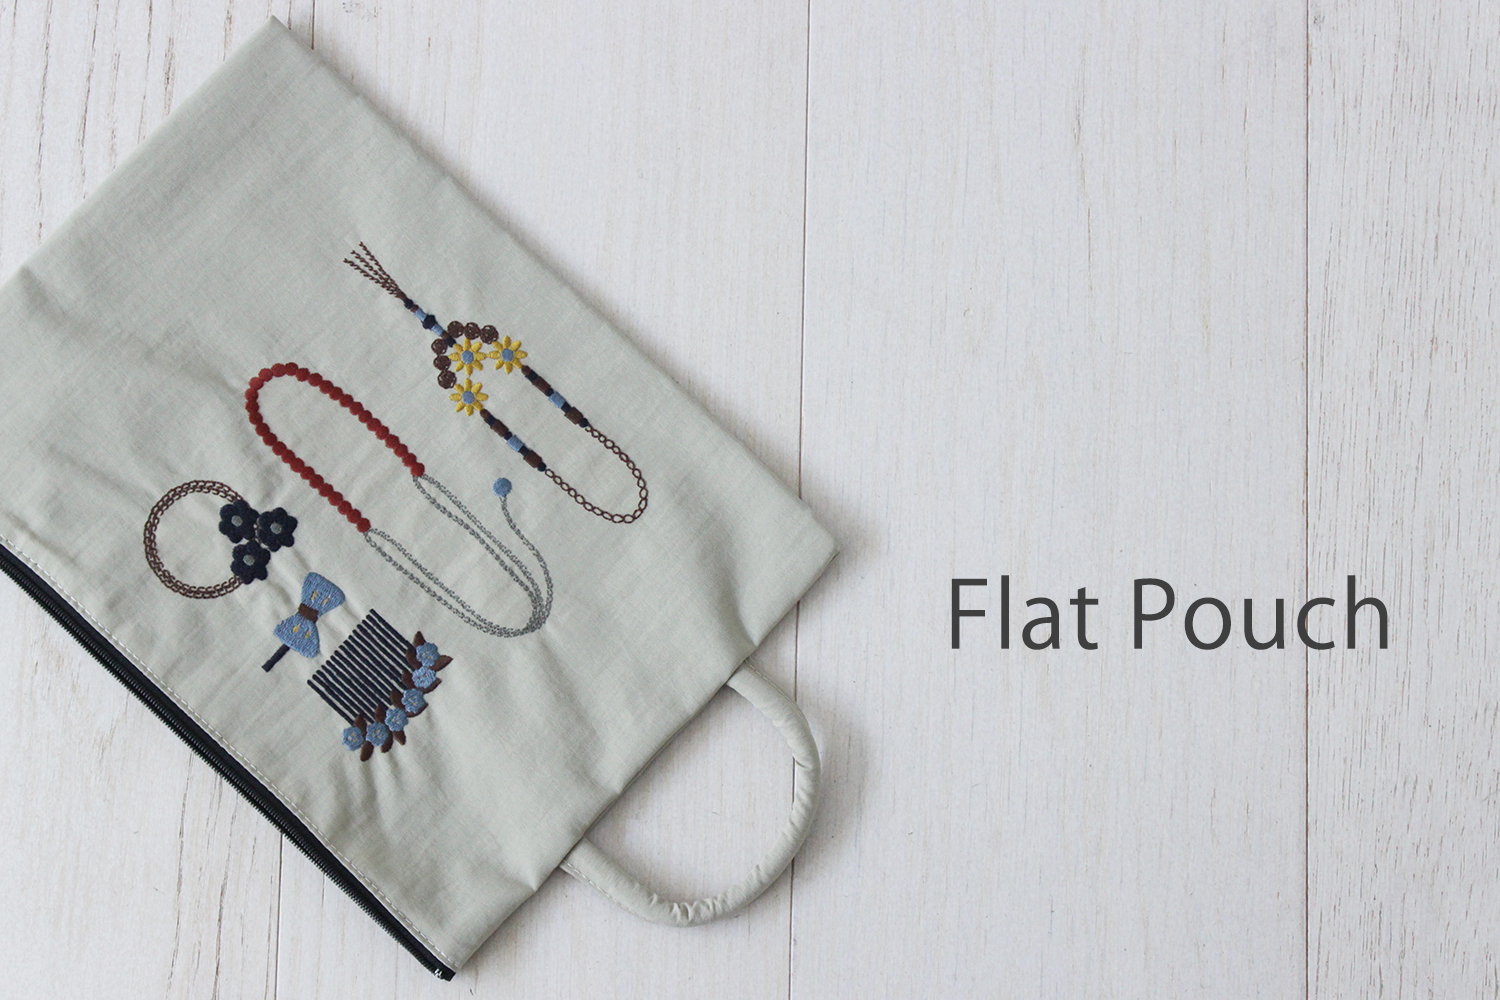 Flatpouch